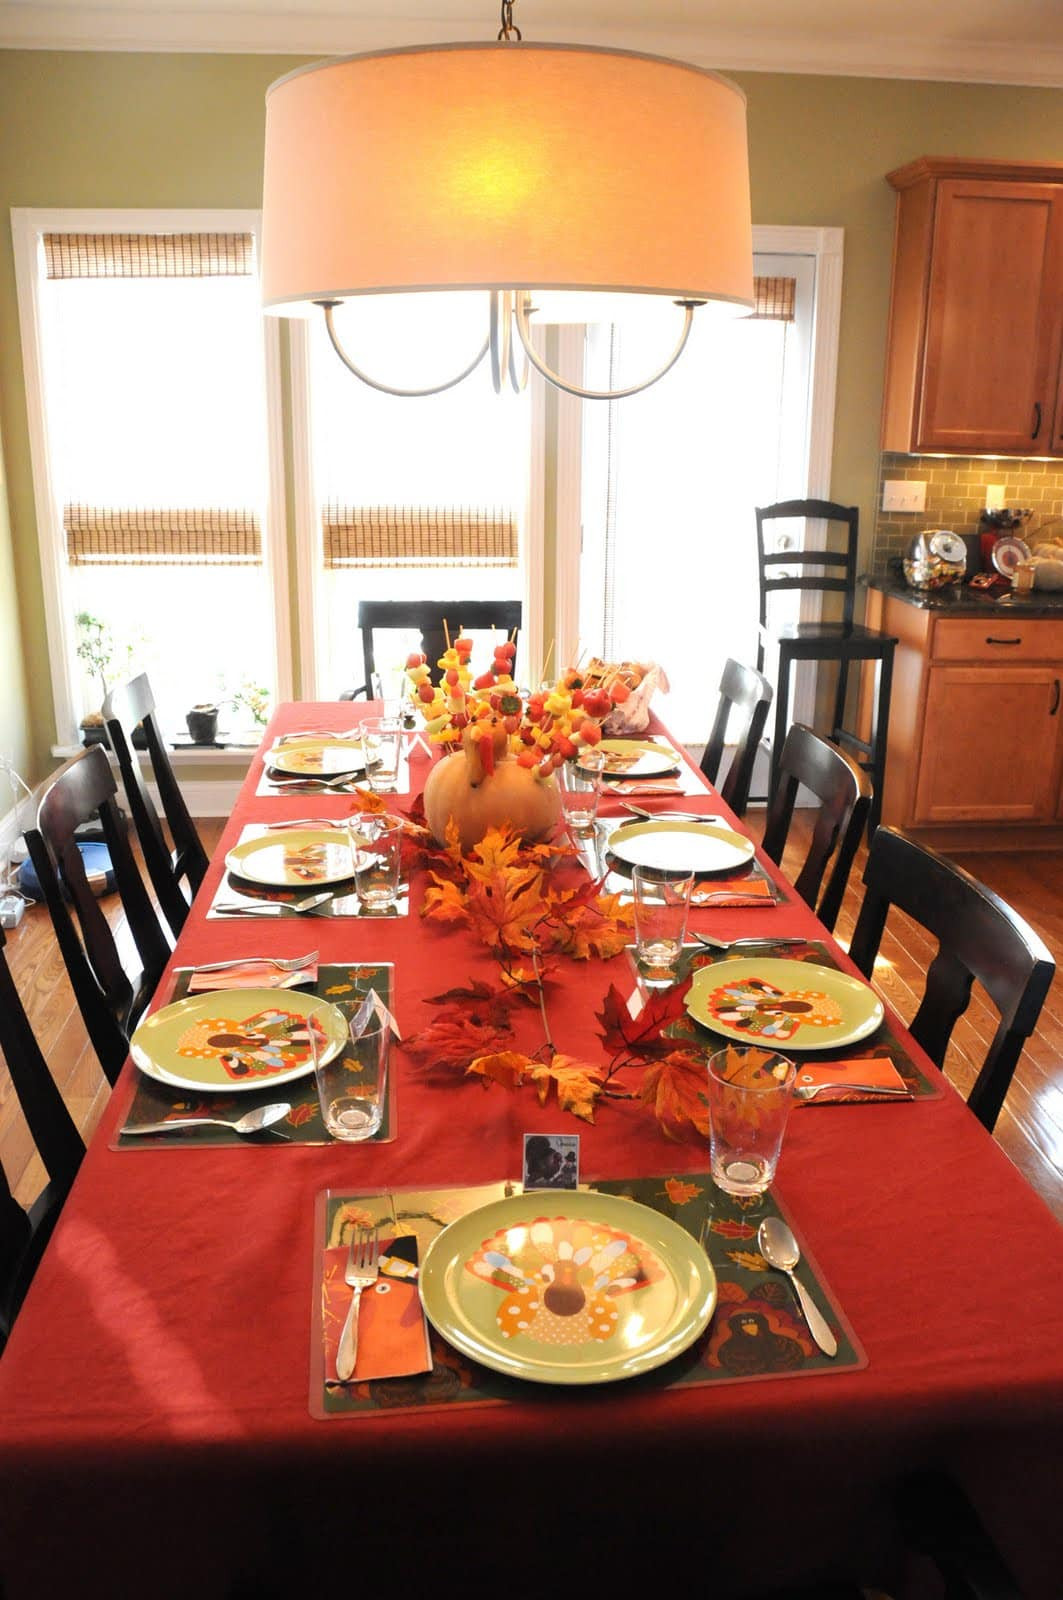 Table Decorations For Thanksgiving  Thanksgiving Decor The Polkadot Chair